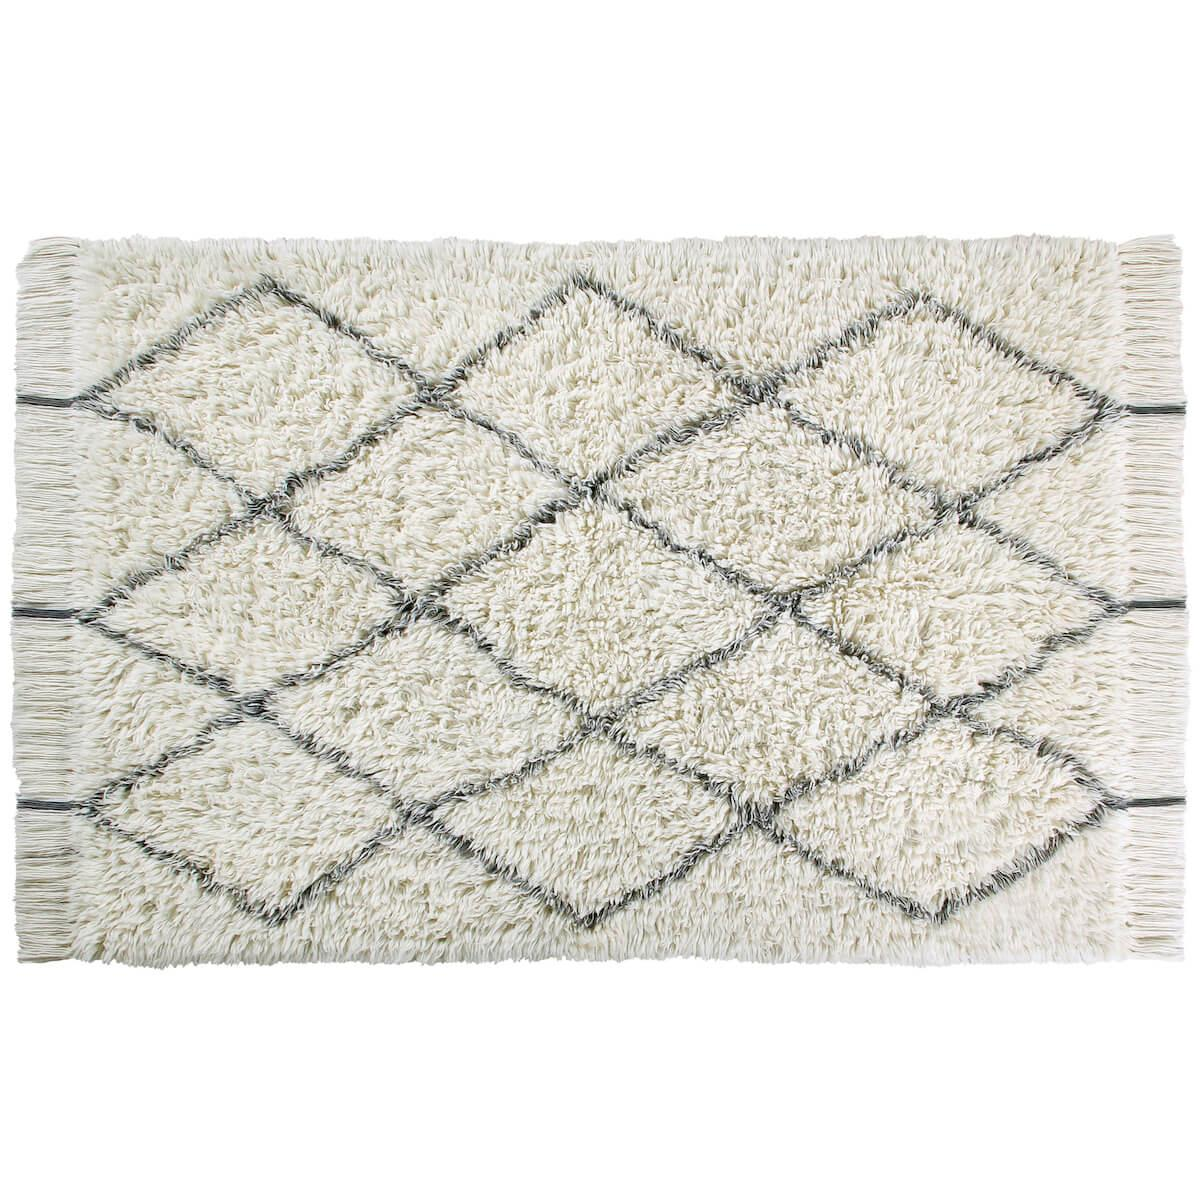 Tapis 200x140cm BERBER SOUL Lorena Canals woolable